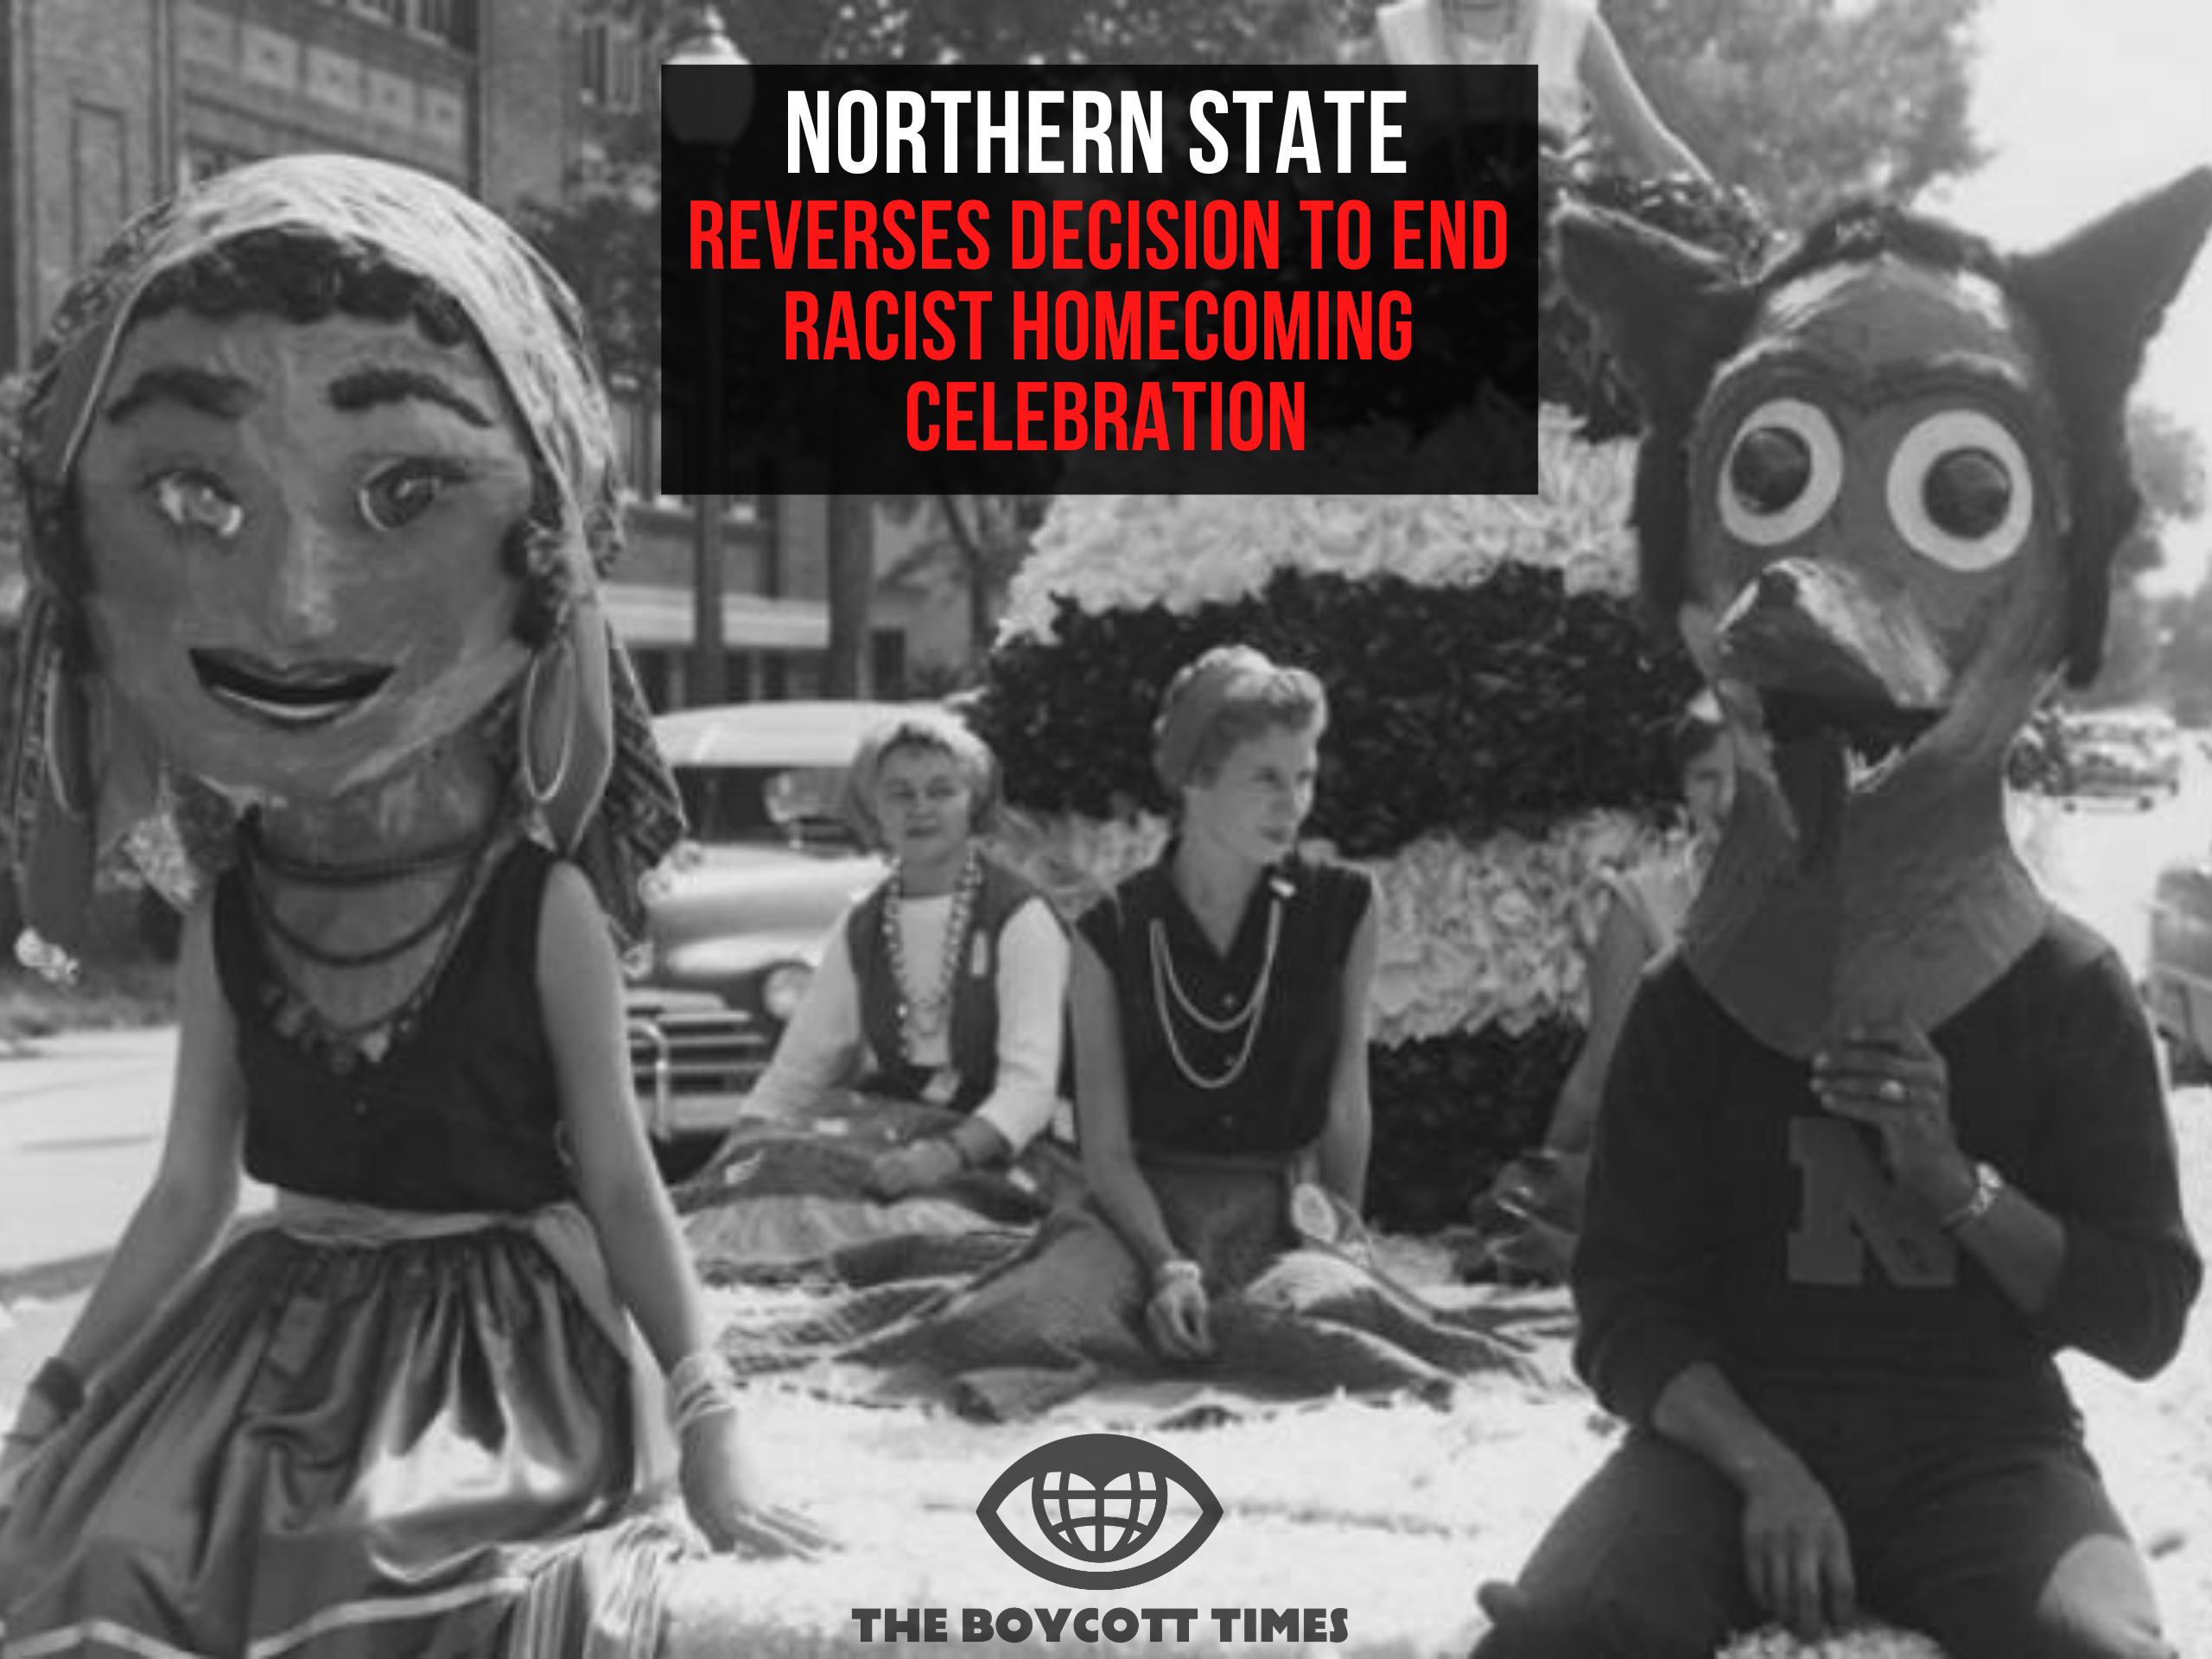 NSU REVERSES DECISION TO END RACIST CELEBRATION